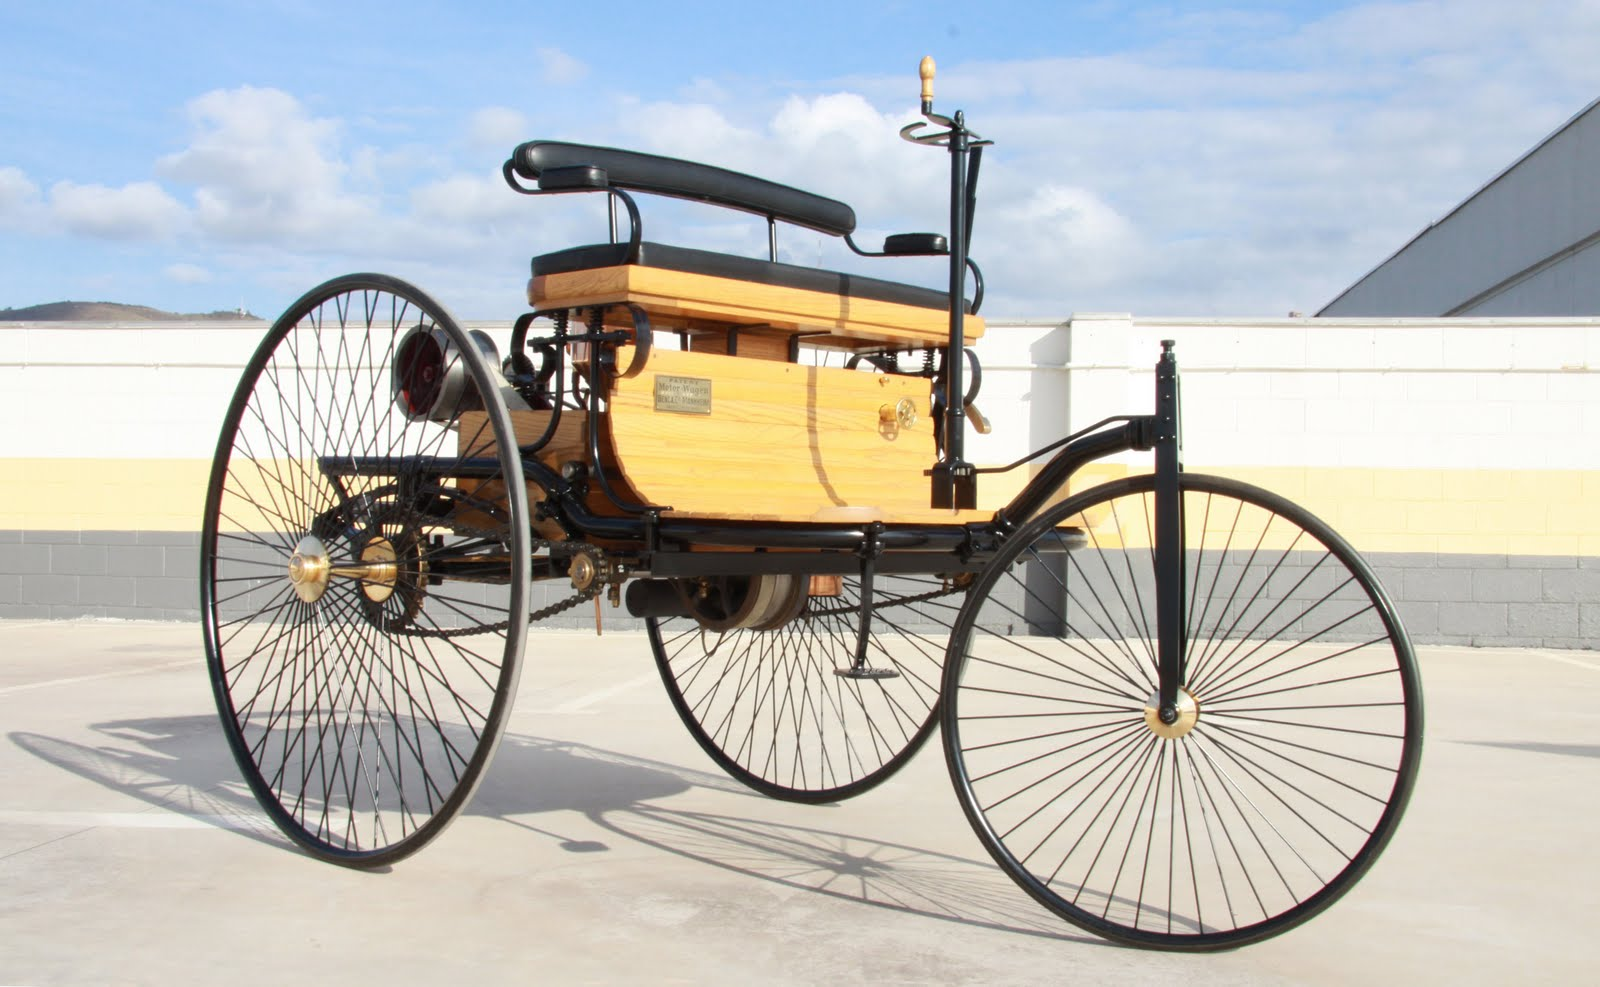 Benz patent-motorwagen photo - 4